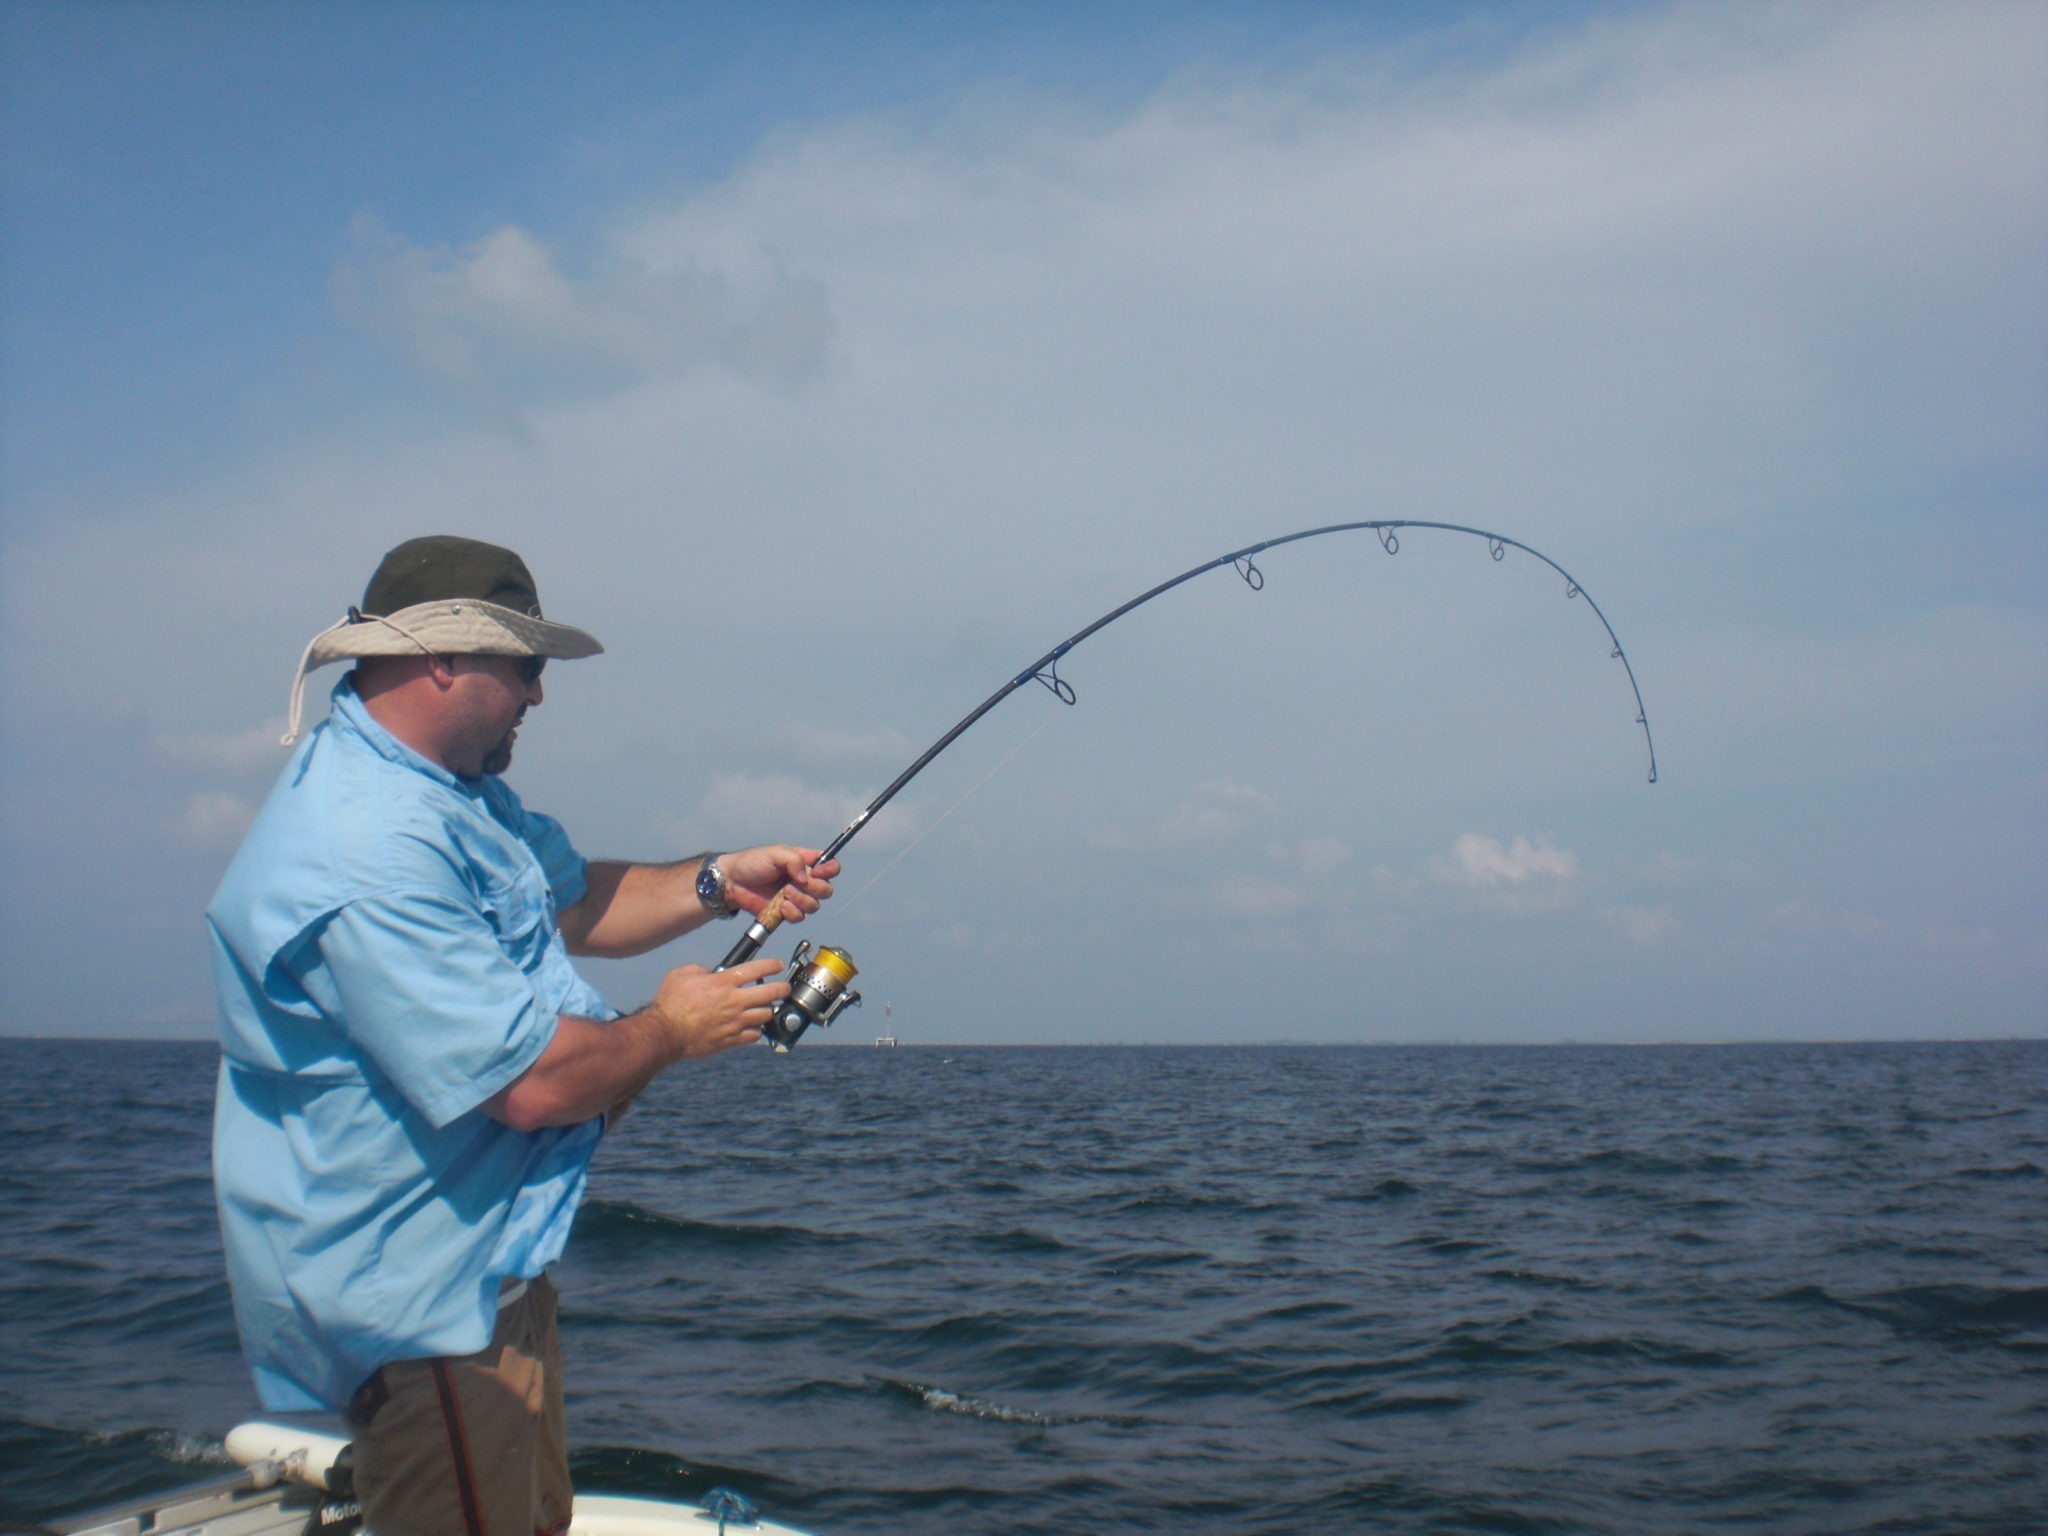 a tampa fisherman with a bent rod